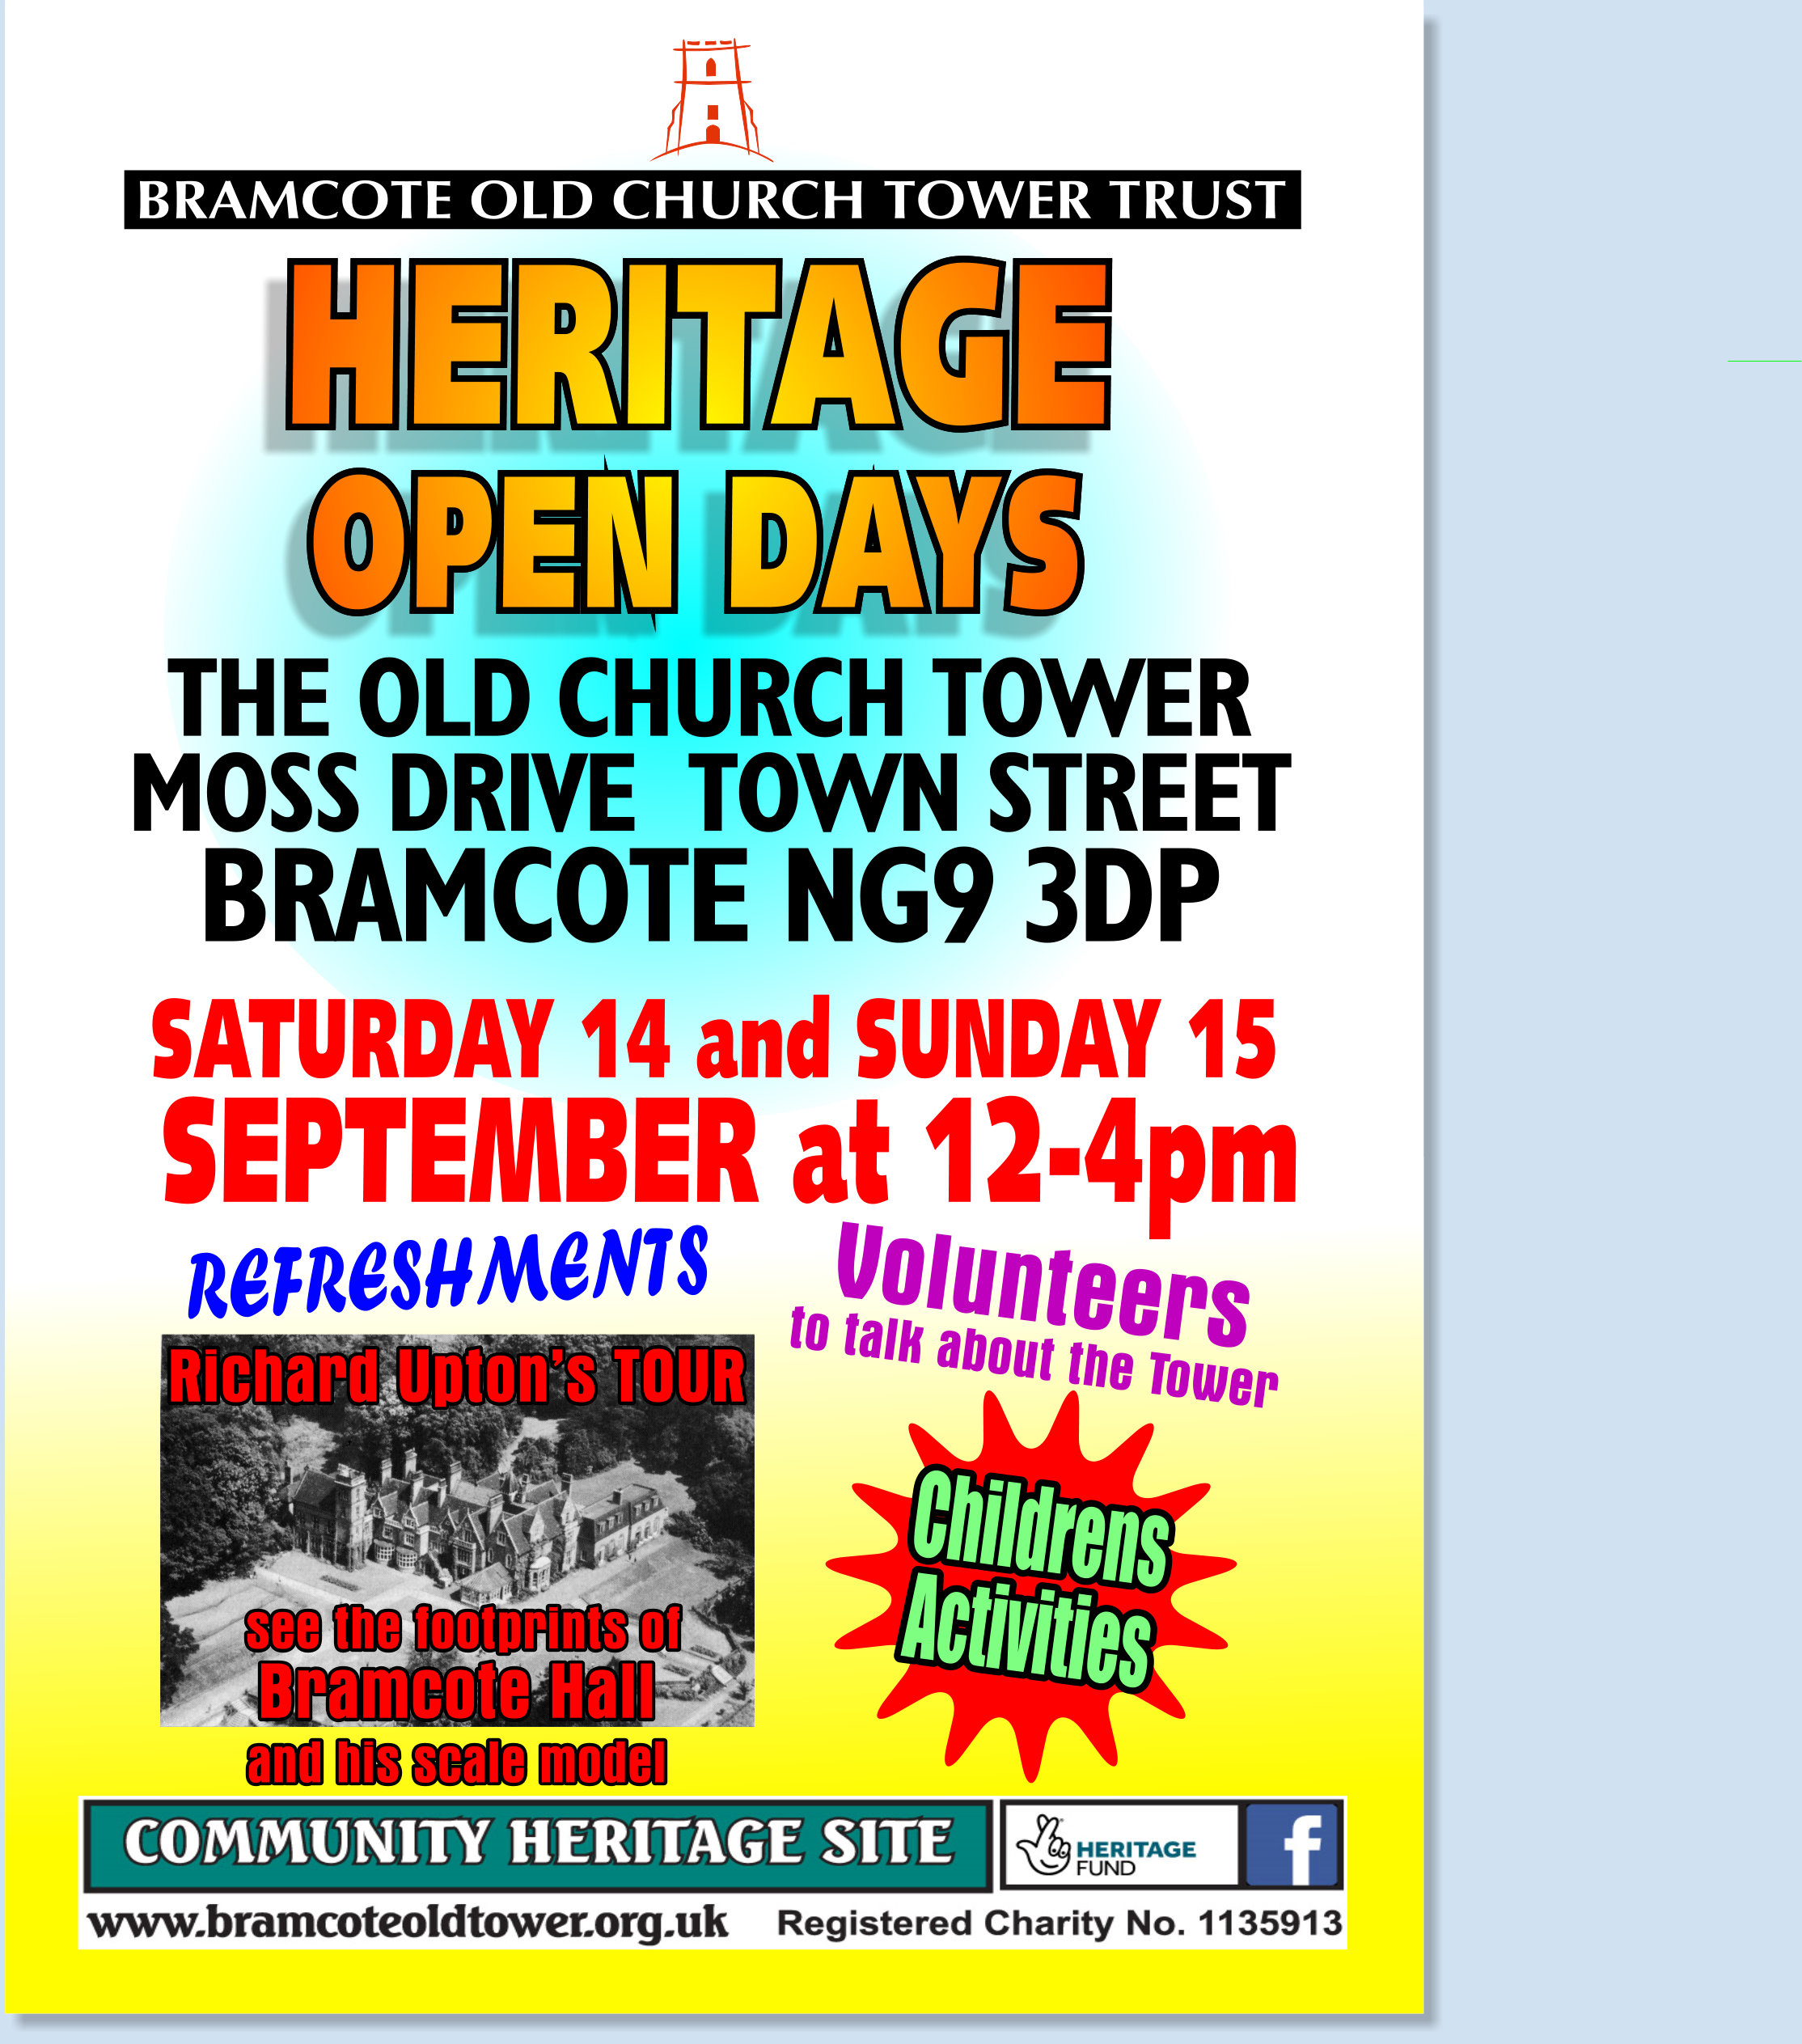 Old Church Tower Bramcote Heritage Open Days event.